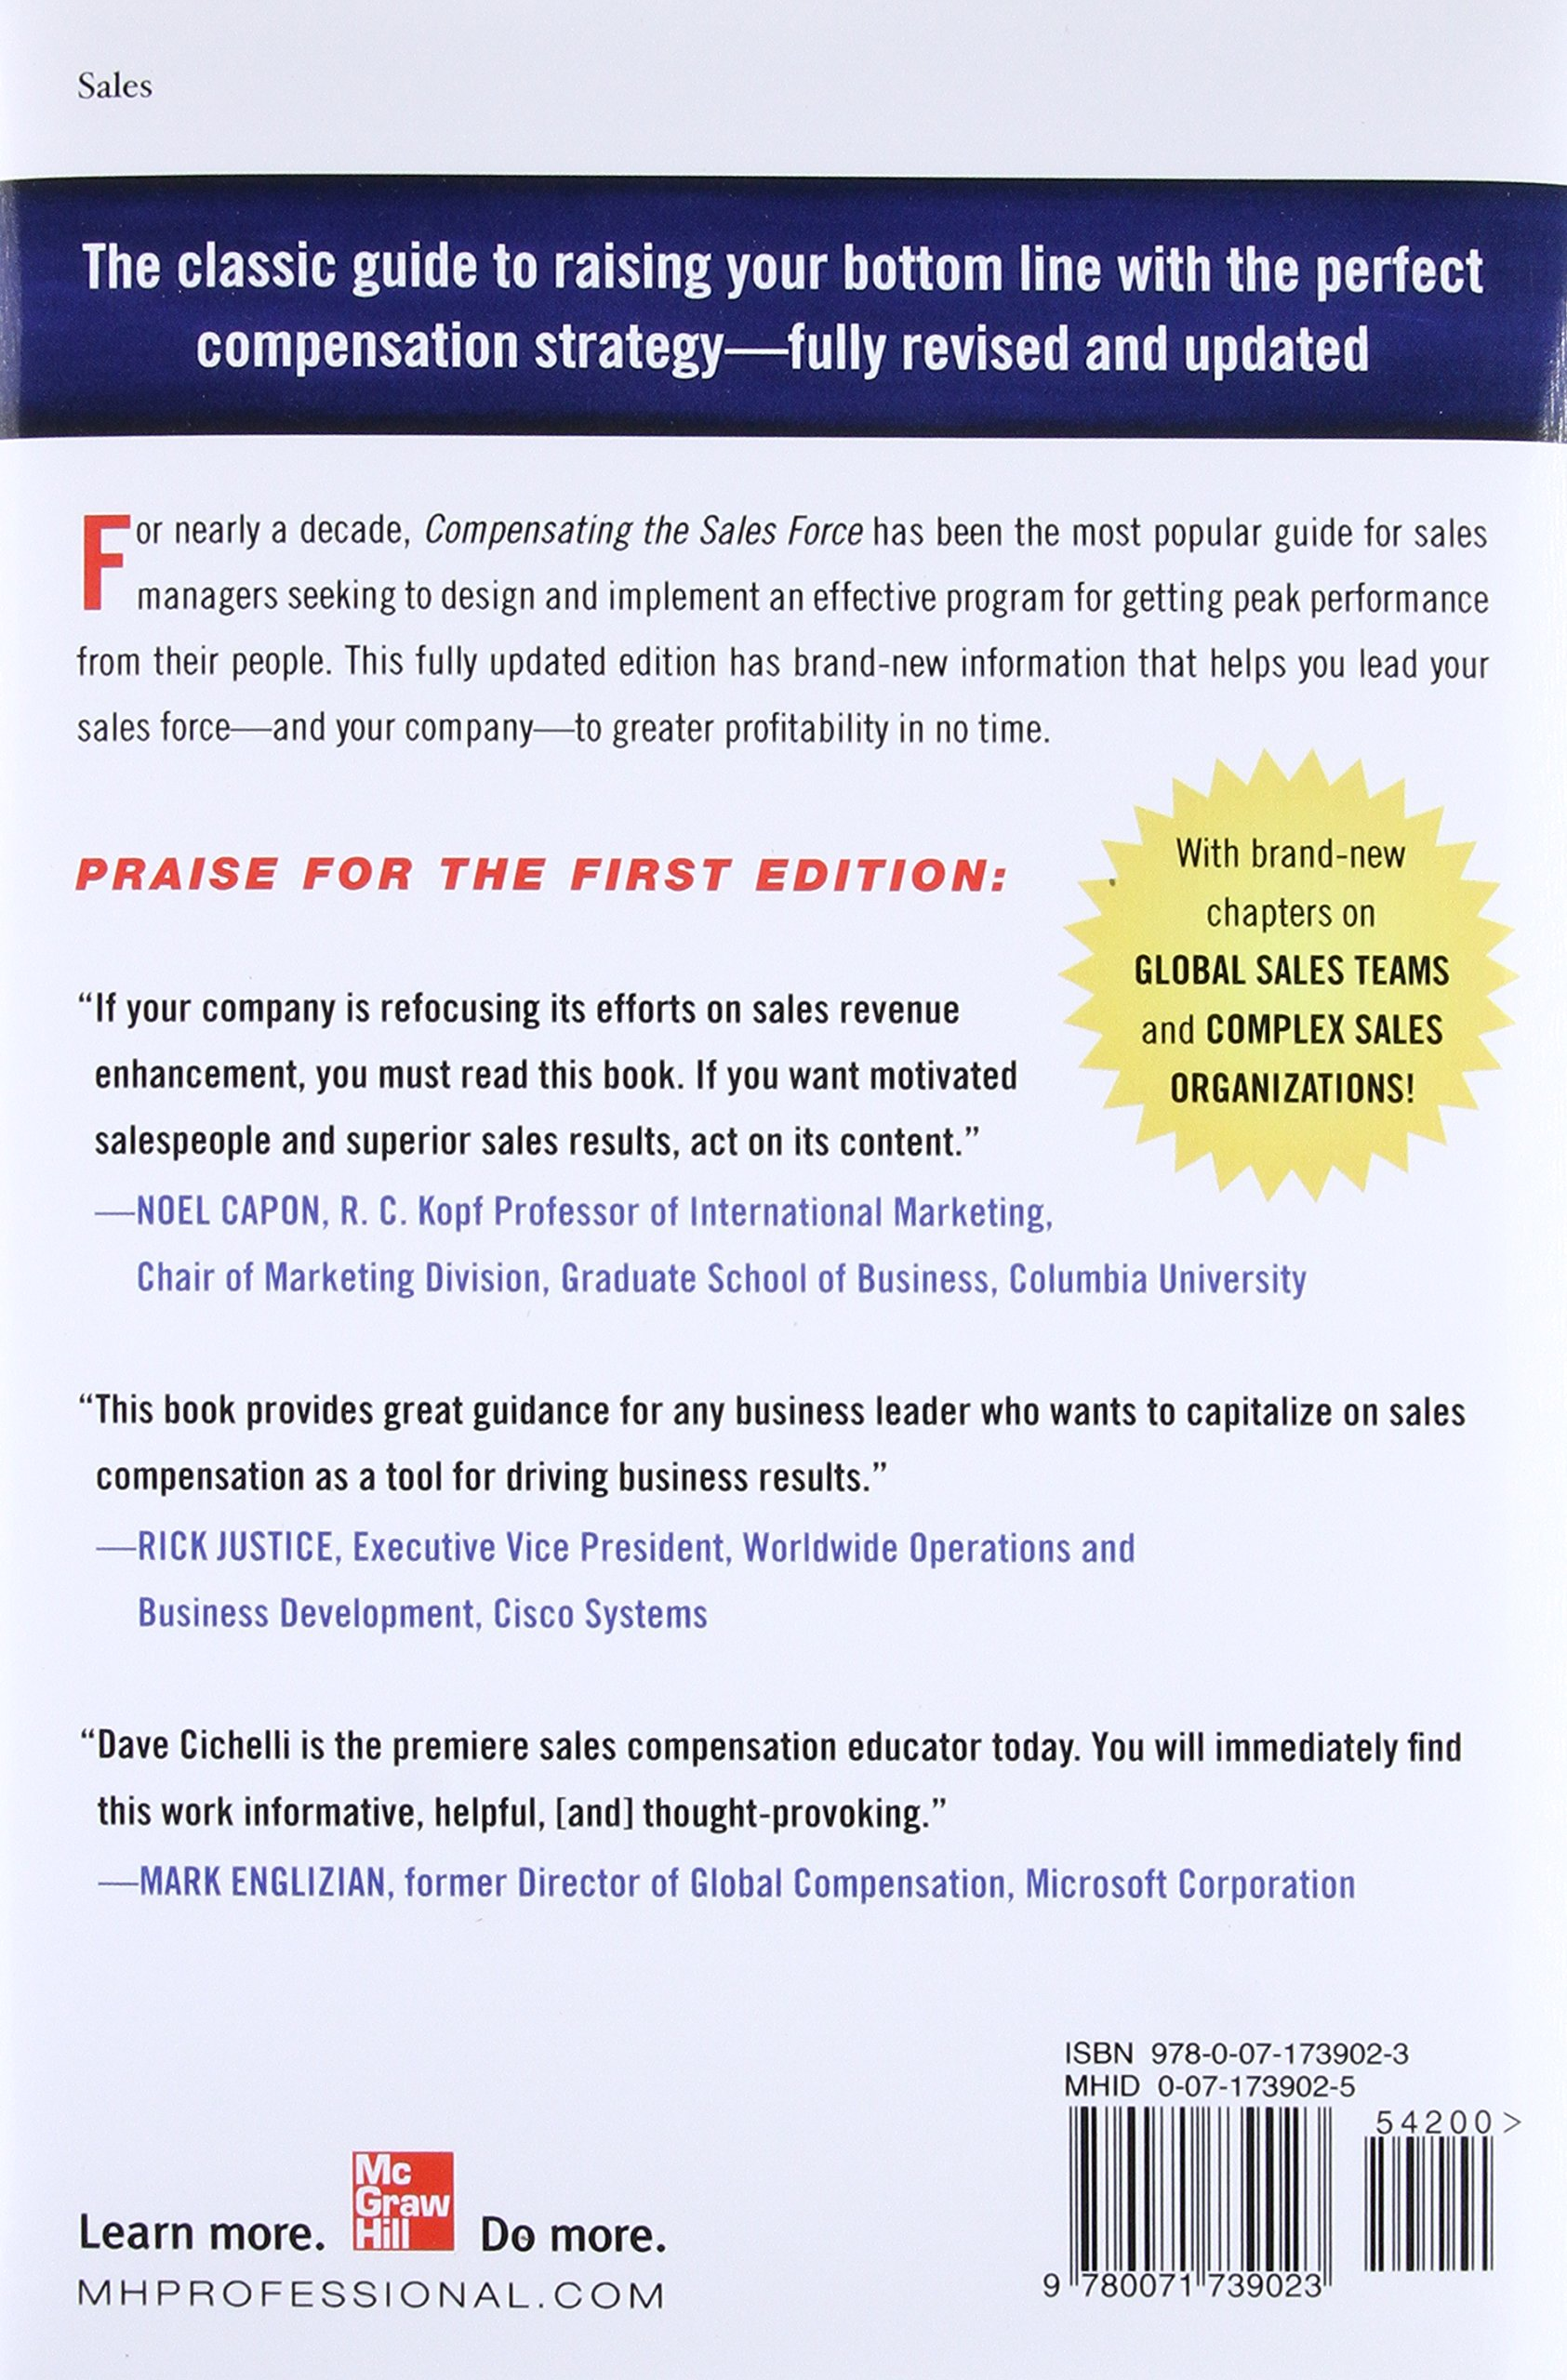 Compensating the sales force a practical guide to designing winning compensating the sales force a practical guide to designing winning sales reward programs second edition david j cichelli 9780071739023 amazon fandeluxe Choice Image